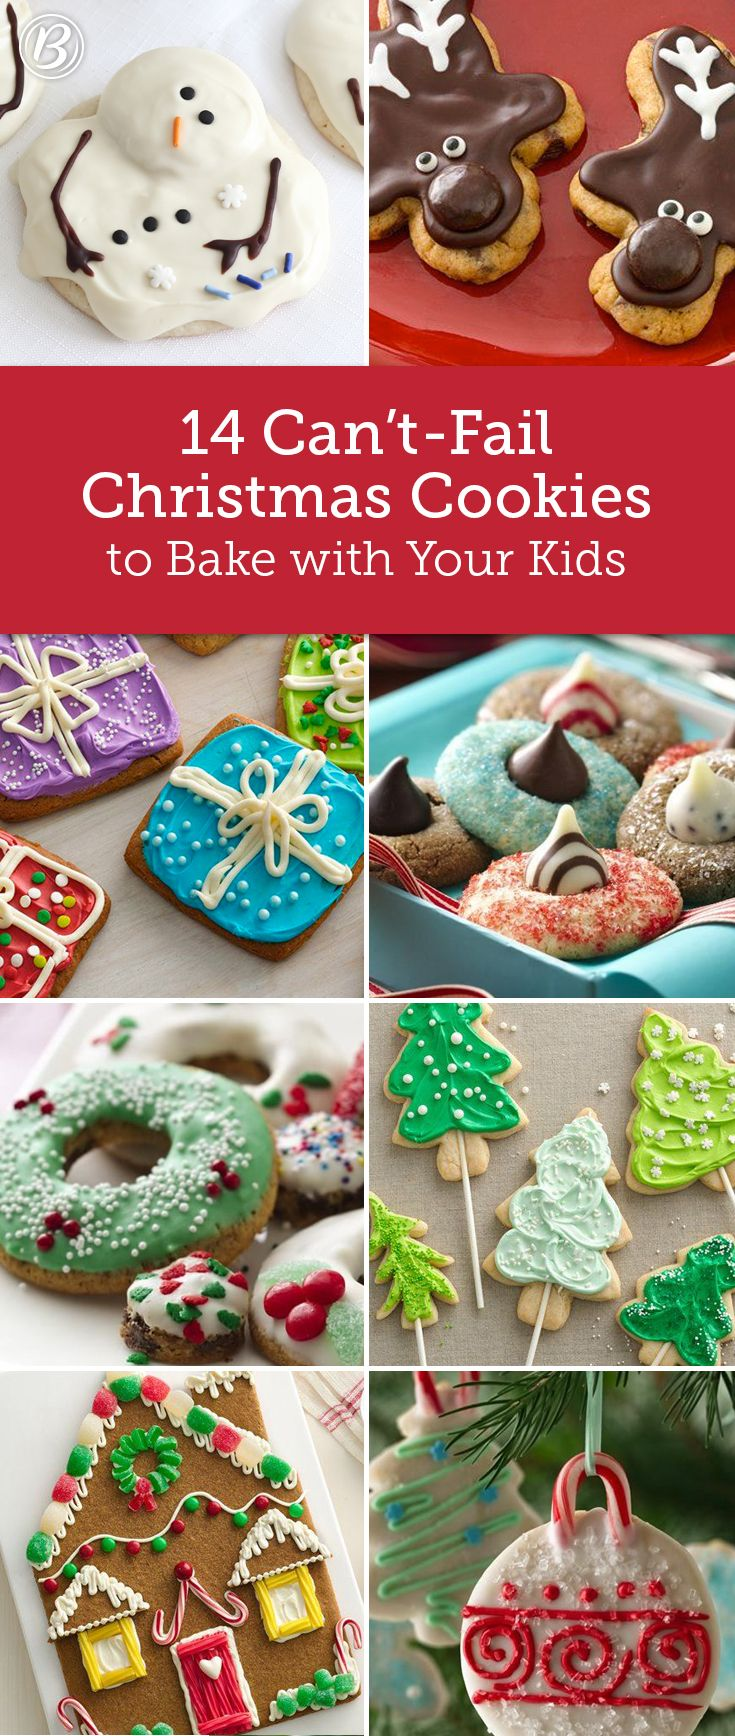 1000 ideas about christmas cookies kids on pinterest for Easy quick christmas baking recipes